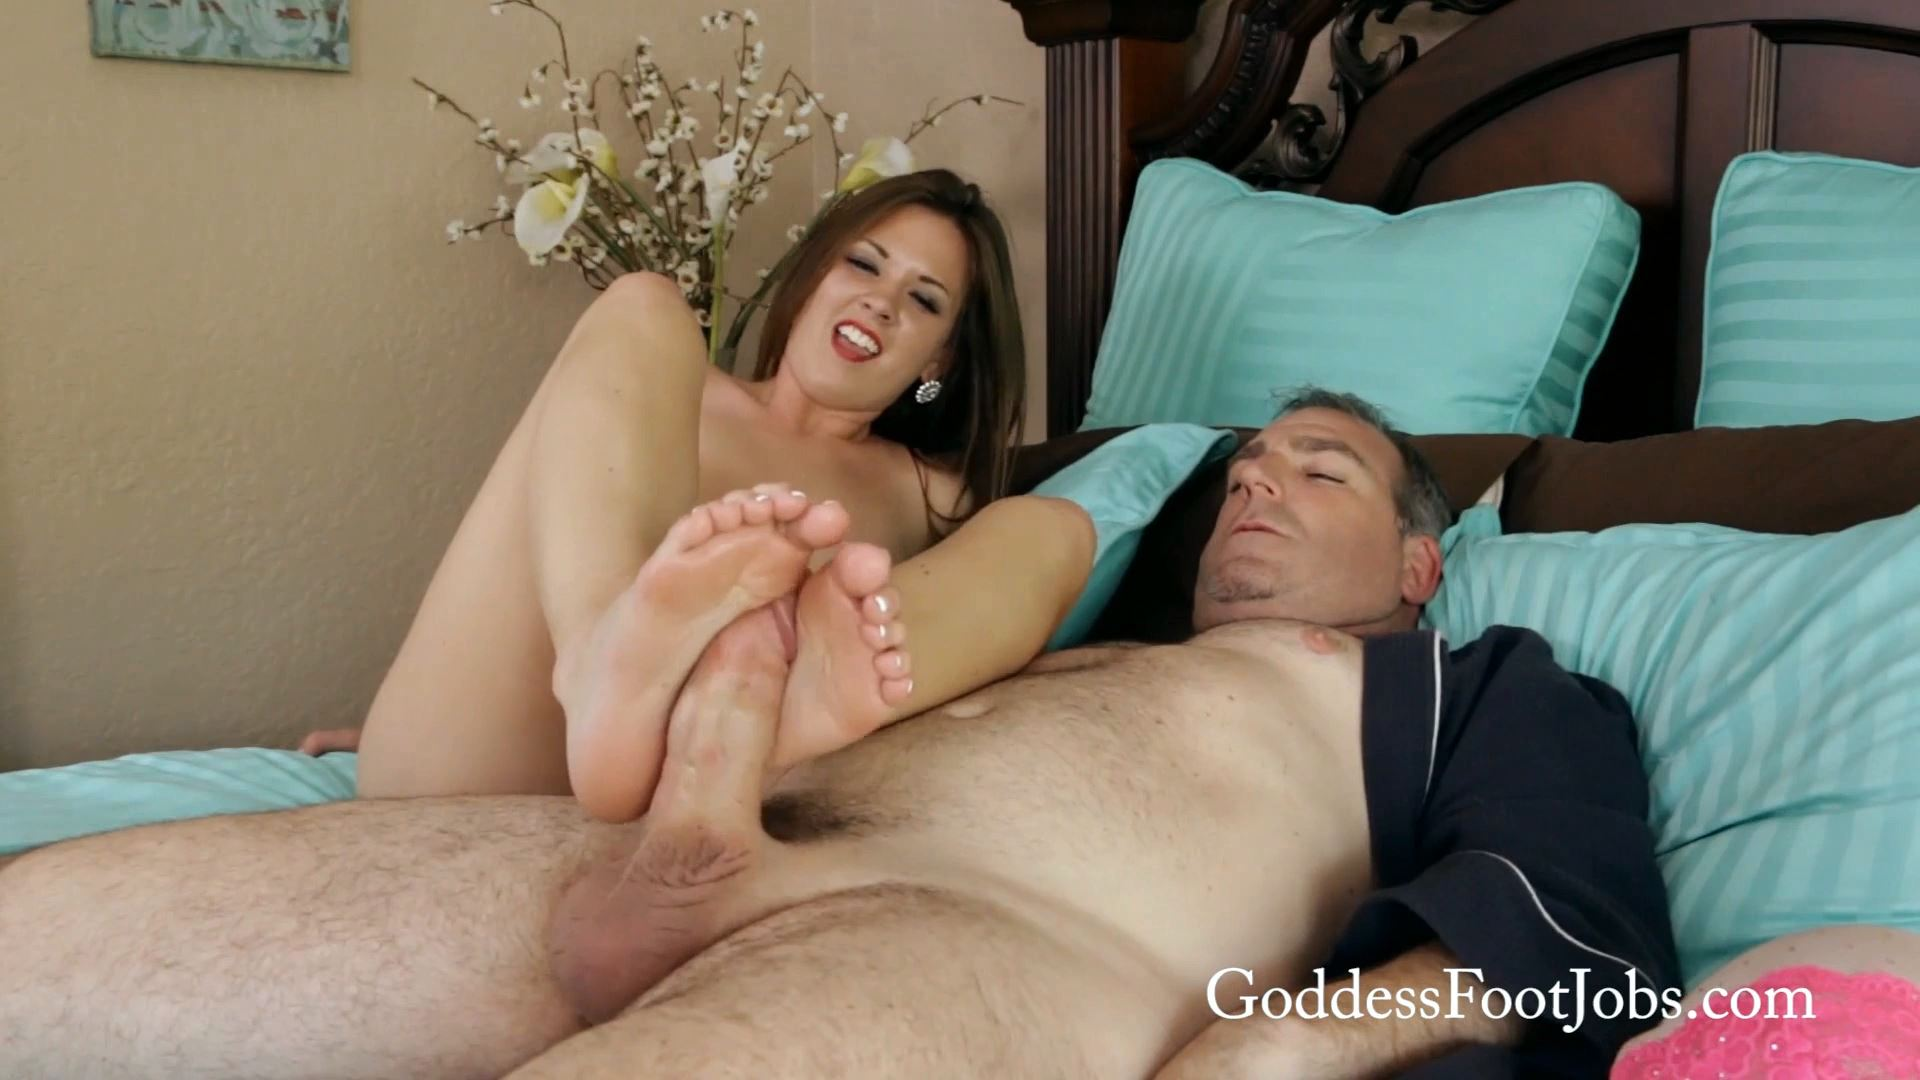 Alice Lighthouse In Scene: Bedtime Footjob - GODDESSFOOTJOBS - FULL HD/1080p/MP4